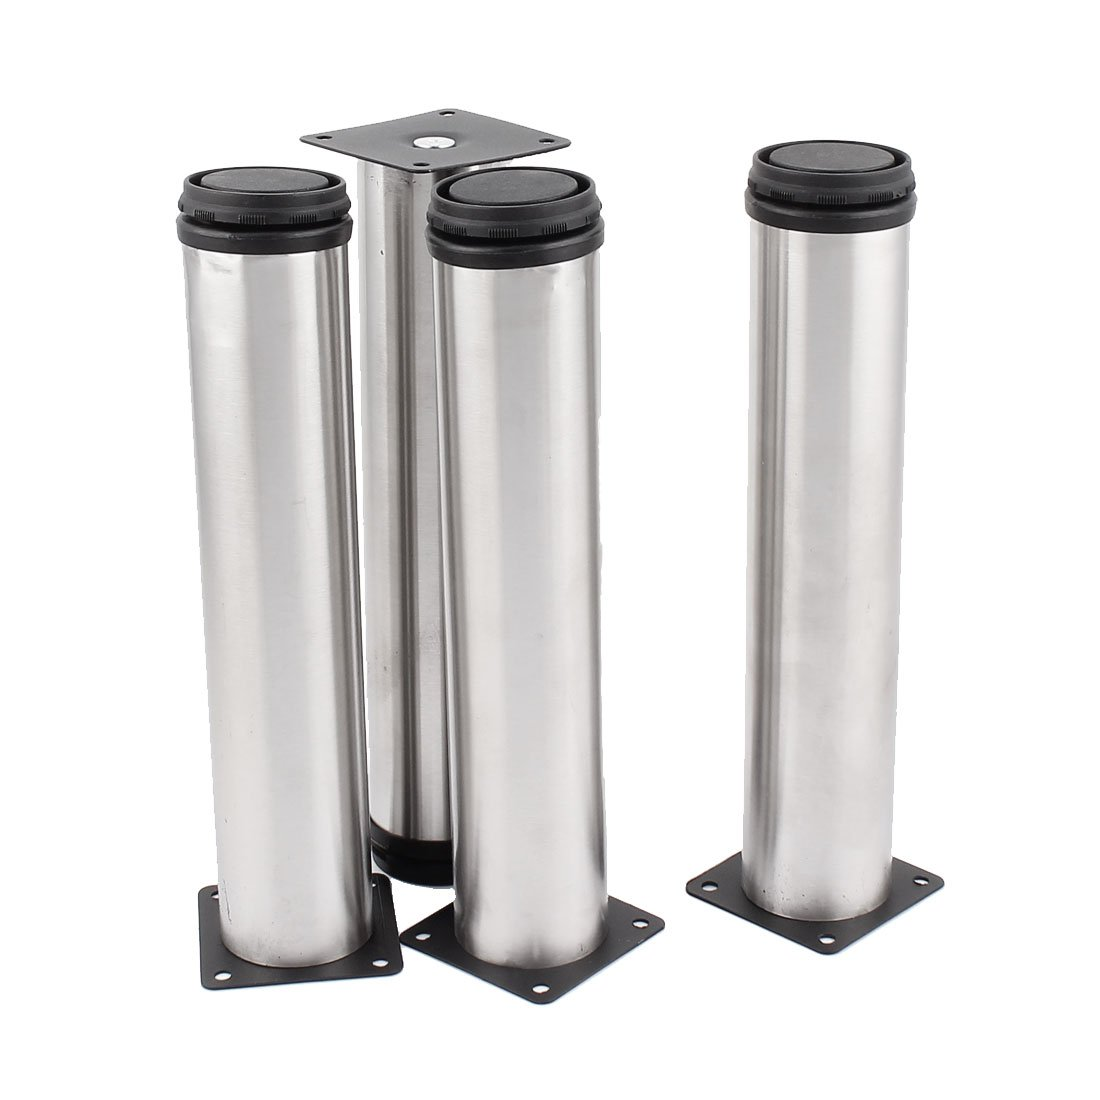 uxcell Round Feet Stand Holder Stainless Steel Adjustable Cabinet Legs 4 Pcs